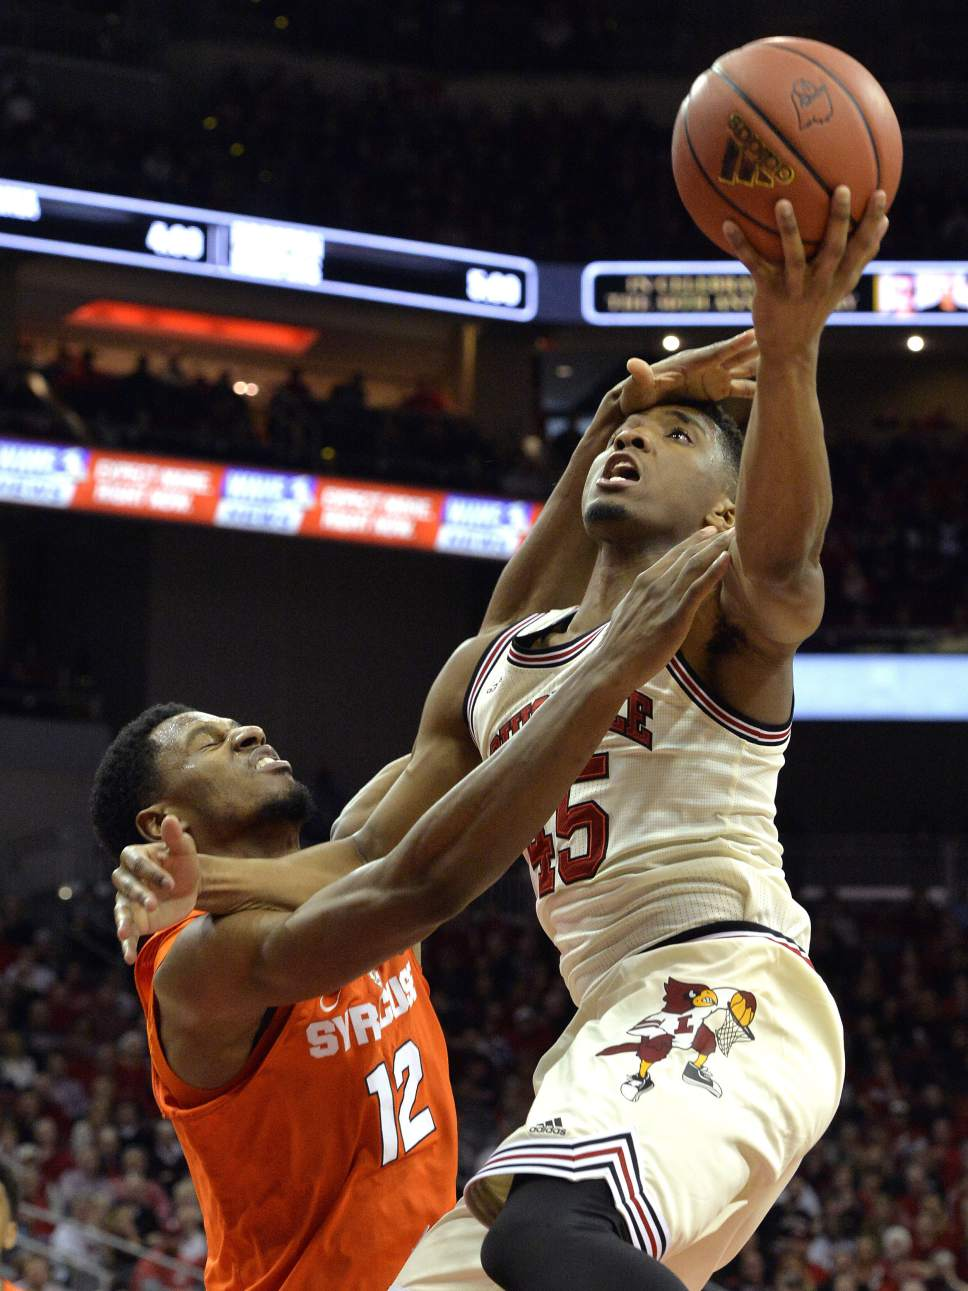 Louisville's Donovan Mitchell (45) is fouled by Syracuse's Taurean Thompson (12) during the second half of an NCAA college basketball game, Sunday, Feb. 26, 2017, in Louisville, Ky. (AP Photo/Timothy D. Easley)